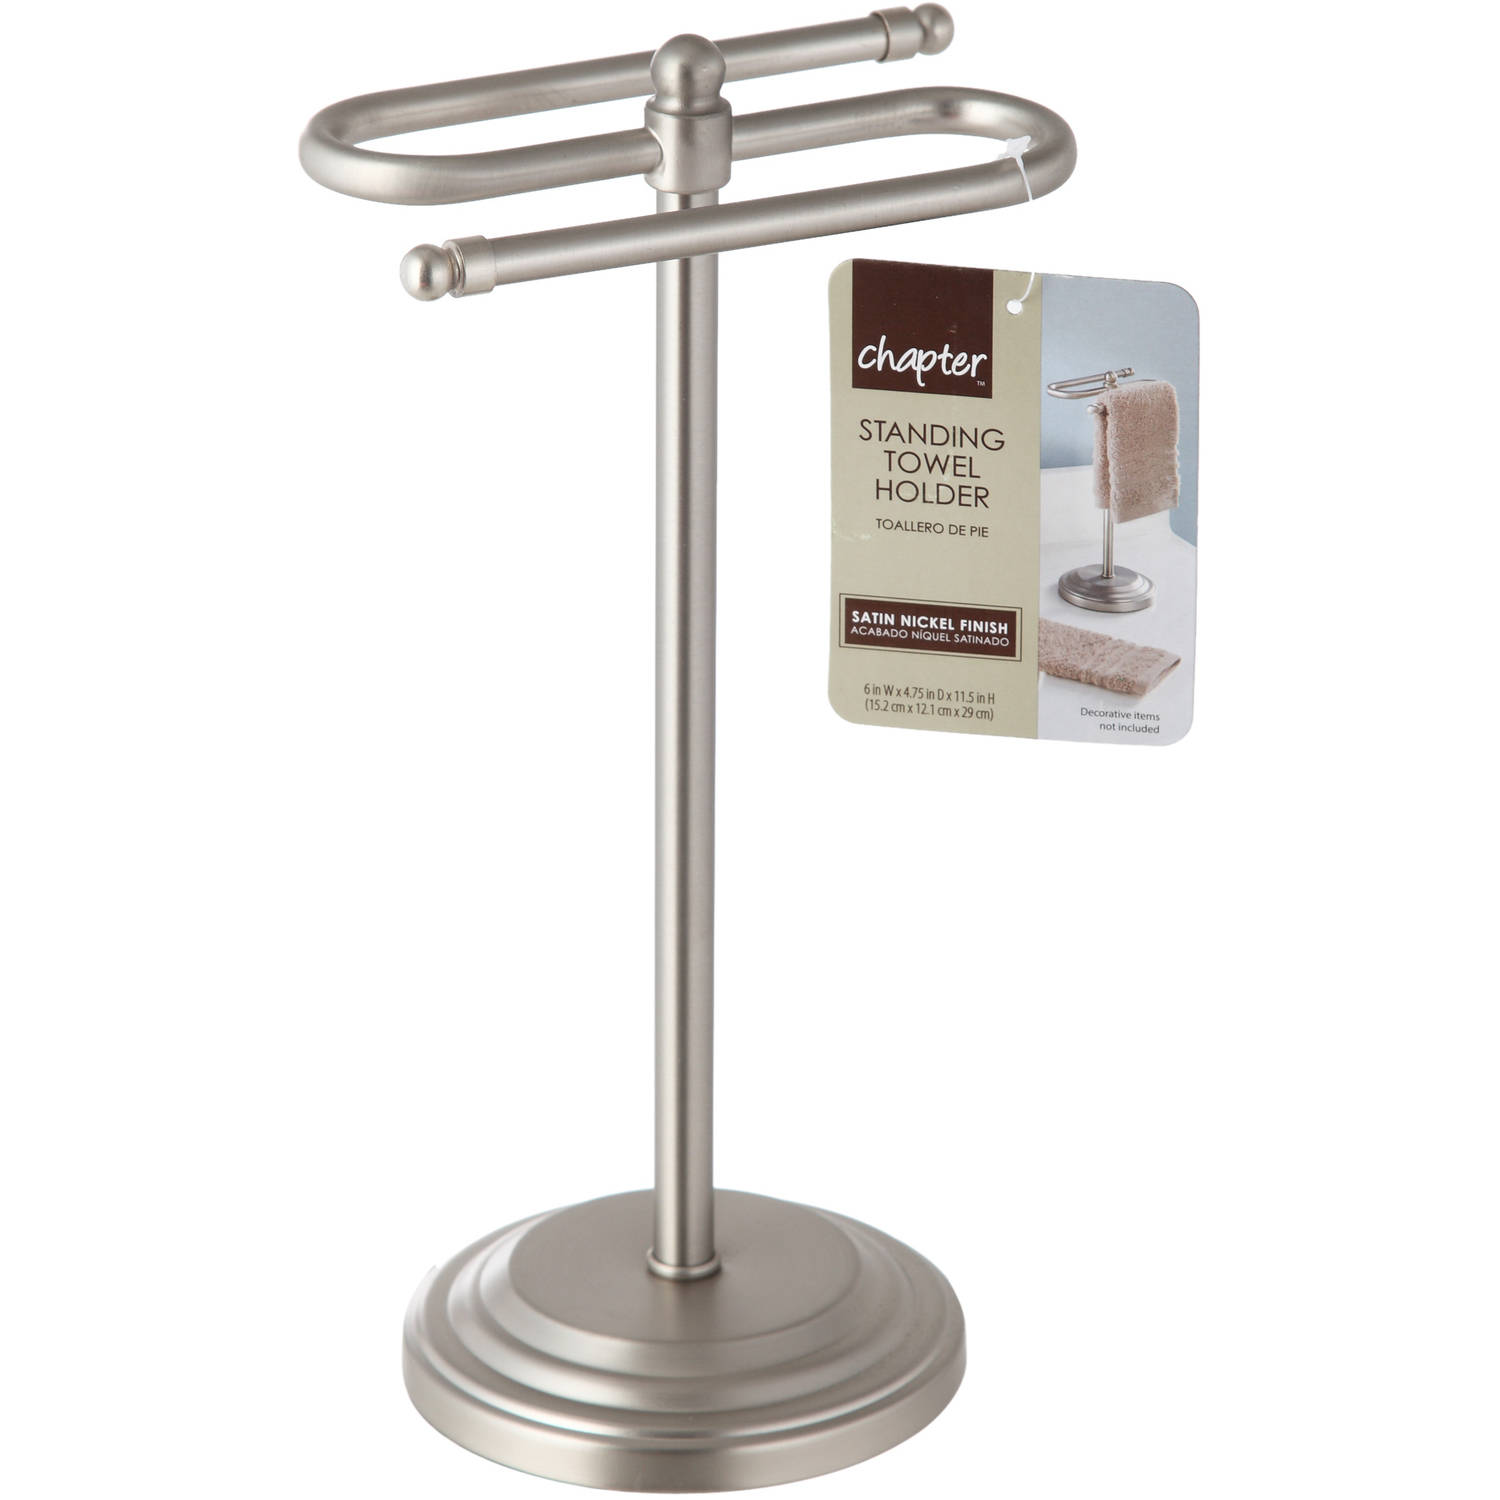 Delicieux Chapter Free Standing Towel Holder   Satin Nickel